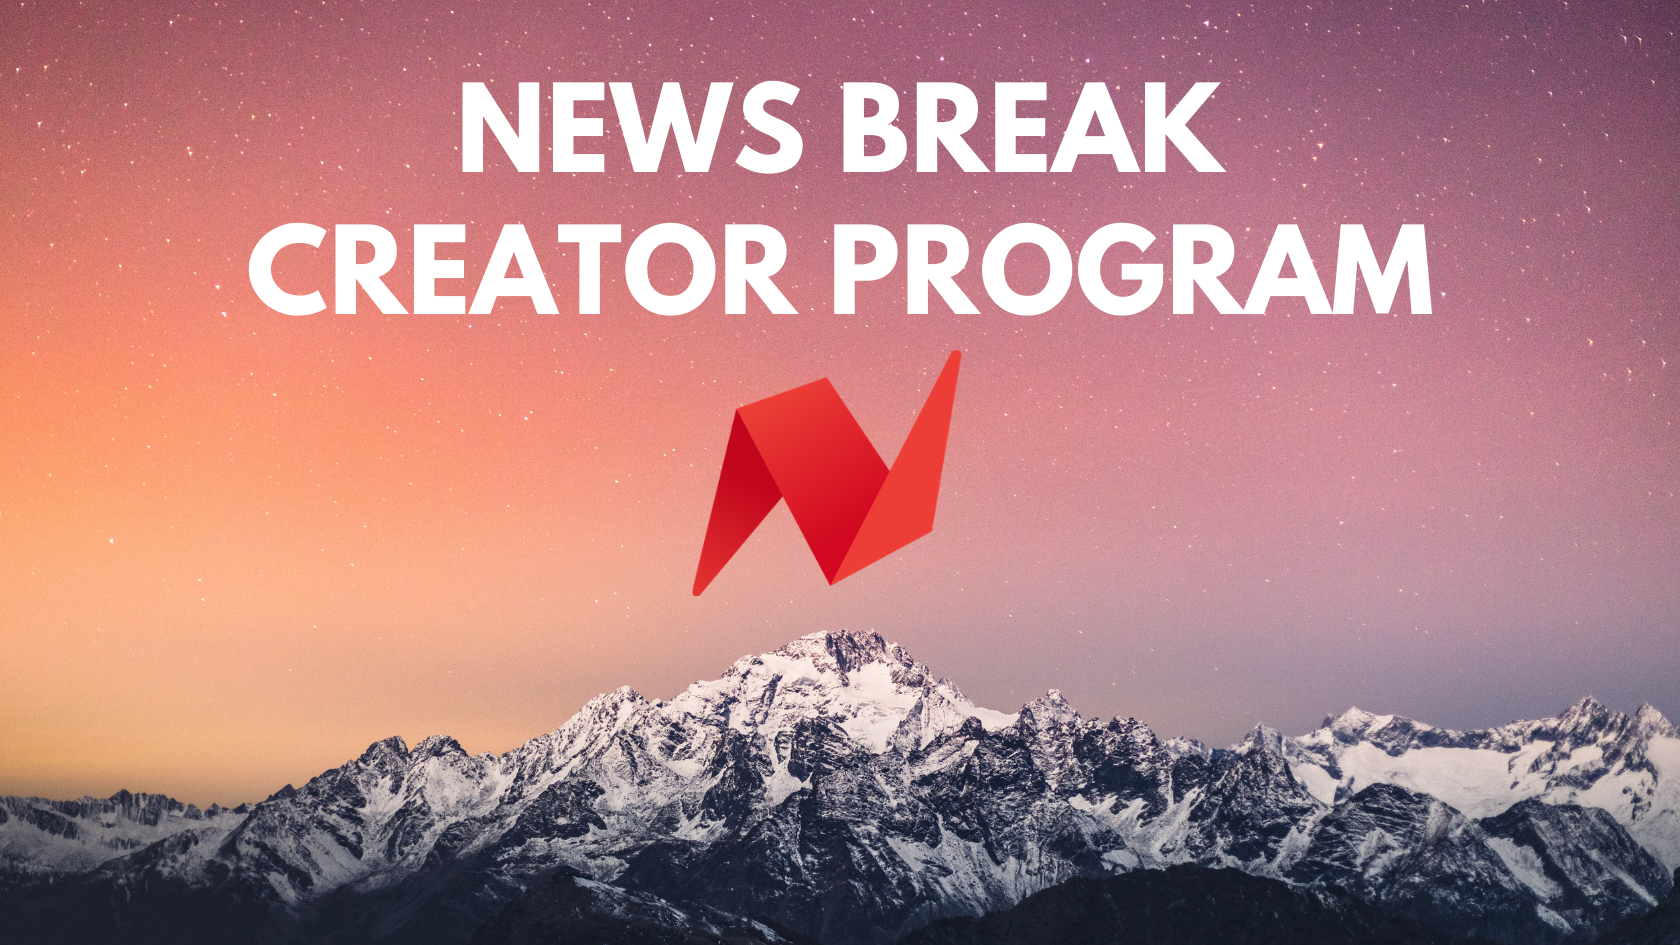 news break, news break review, news break creator program, making money on news break, news break writer earnings, newsbreak